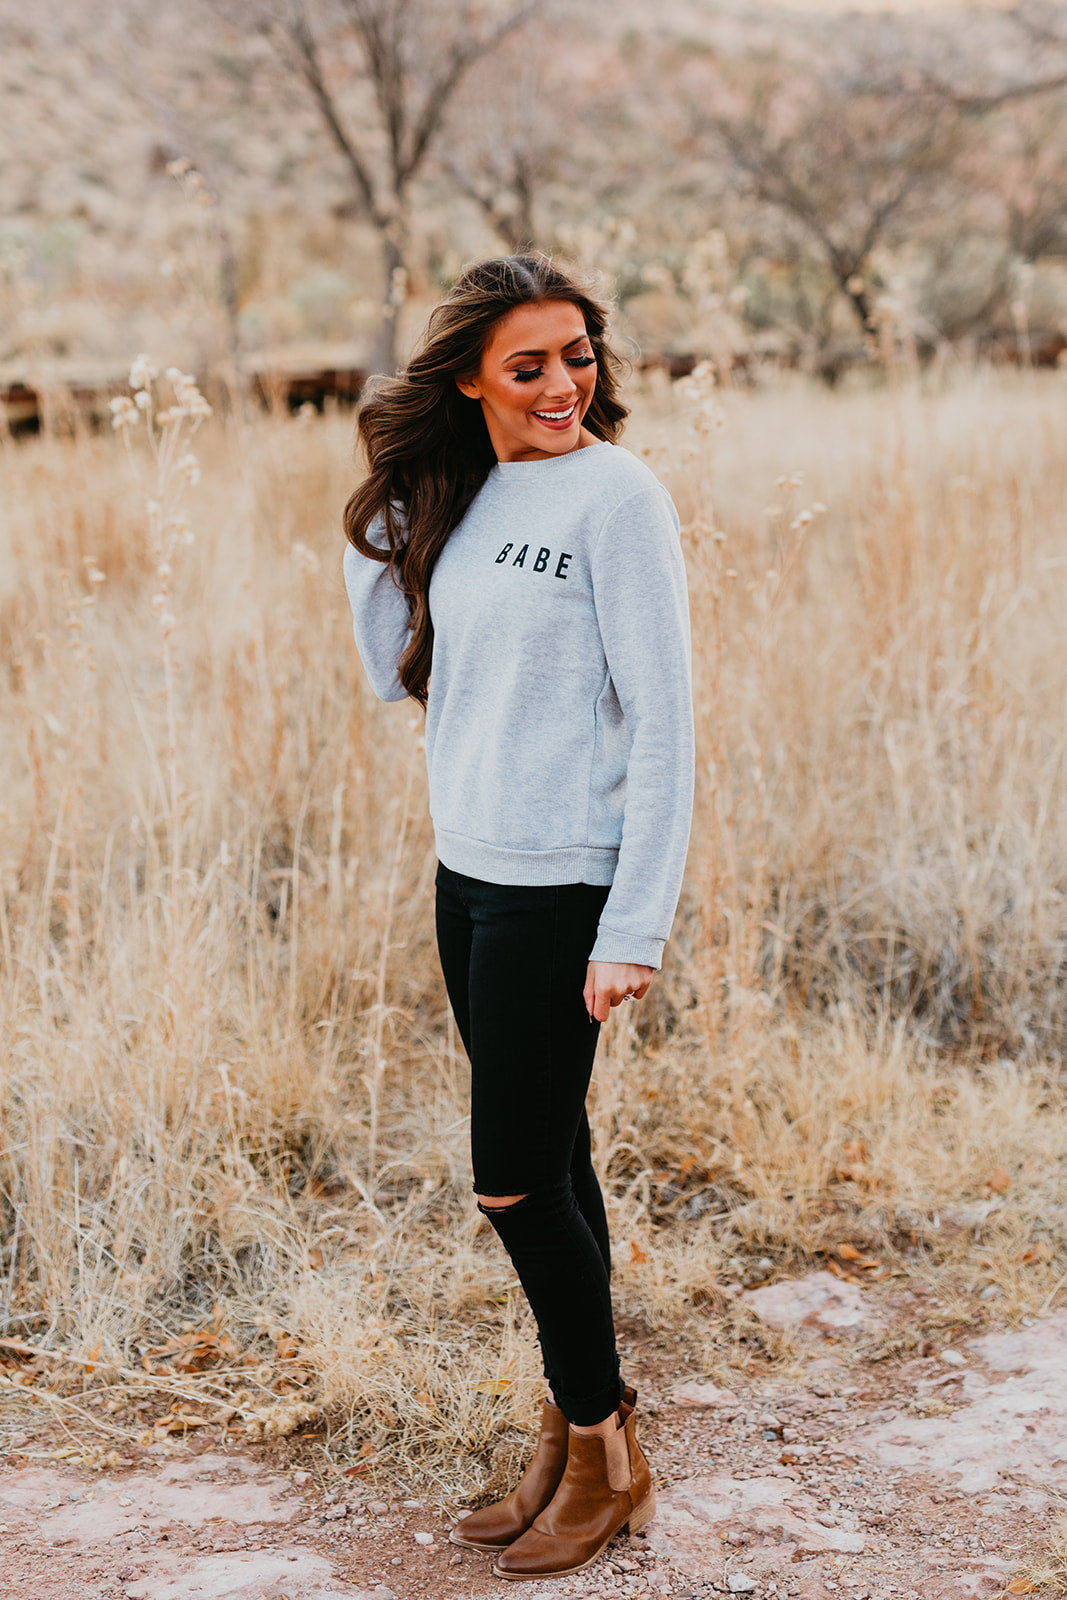 THE BABE SWEATSHIRT IN GREY